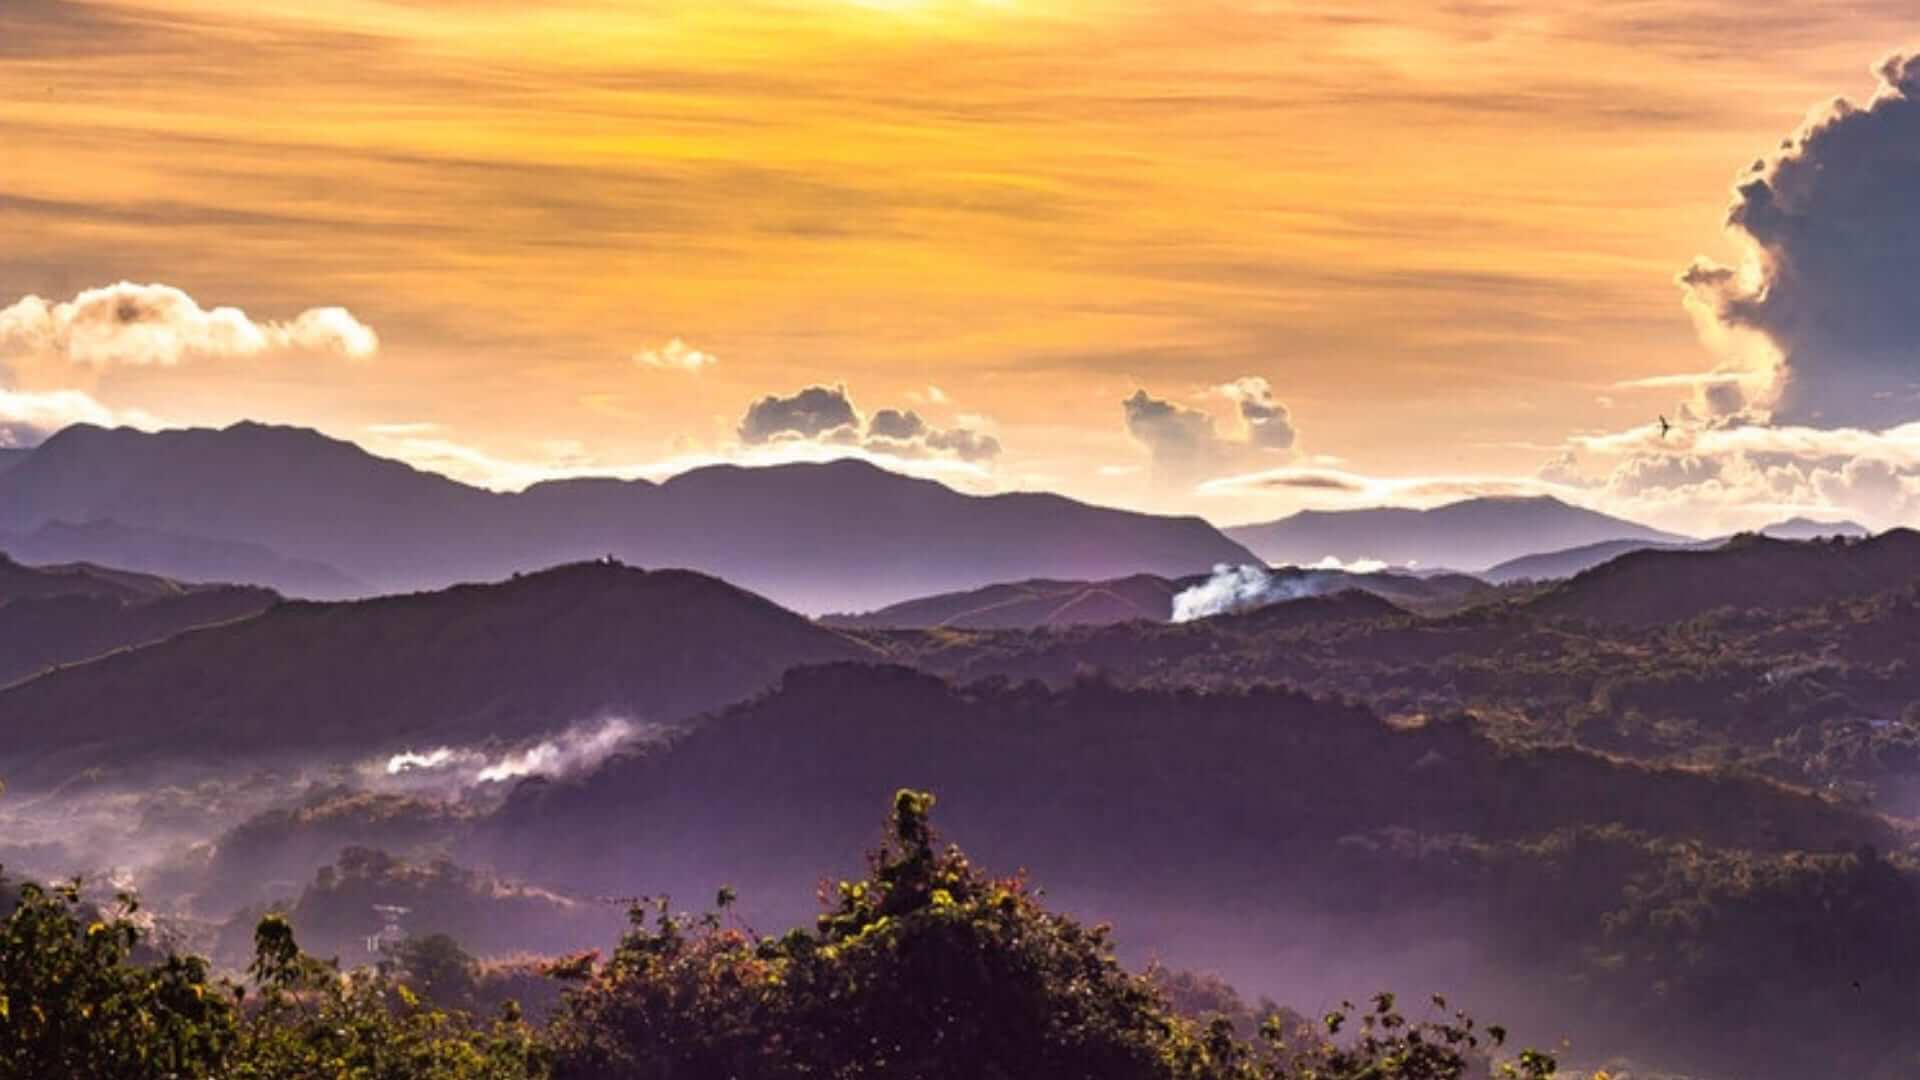 A sunrise above mountains in The Philipines.